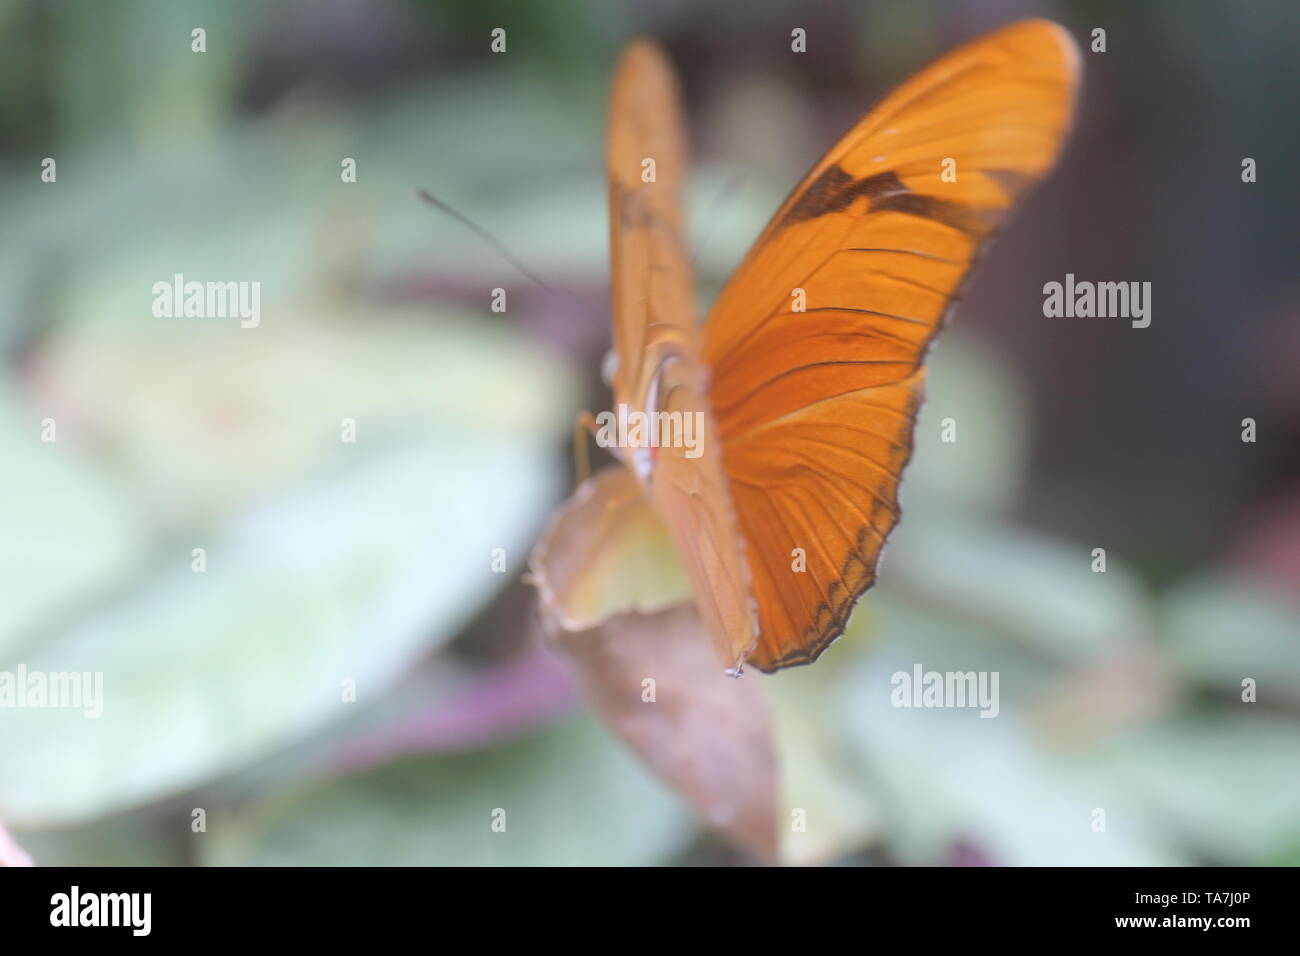 Orange butterfly facing outward with its wings partially opened - Stock Image